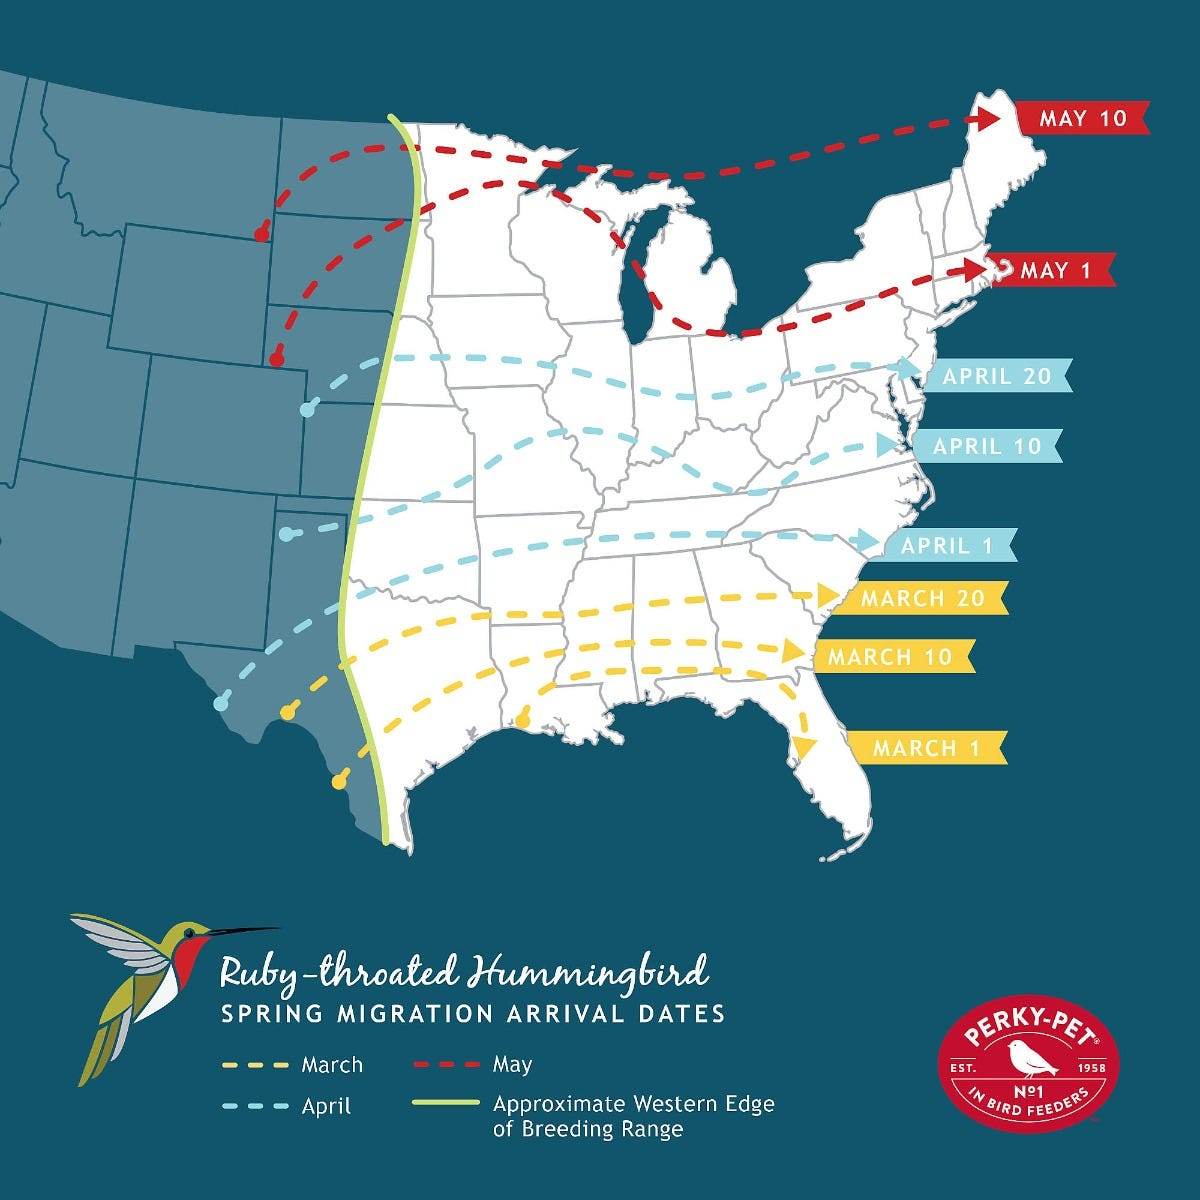 Ruby-Throated Hummingbird Spring Migration Arrival Dates